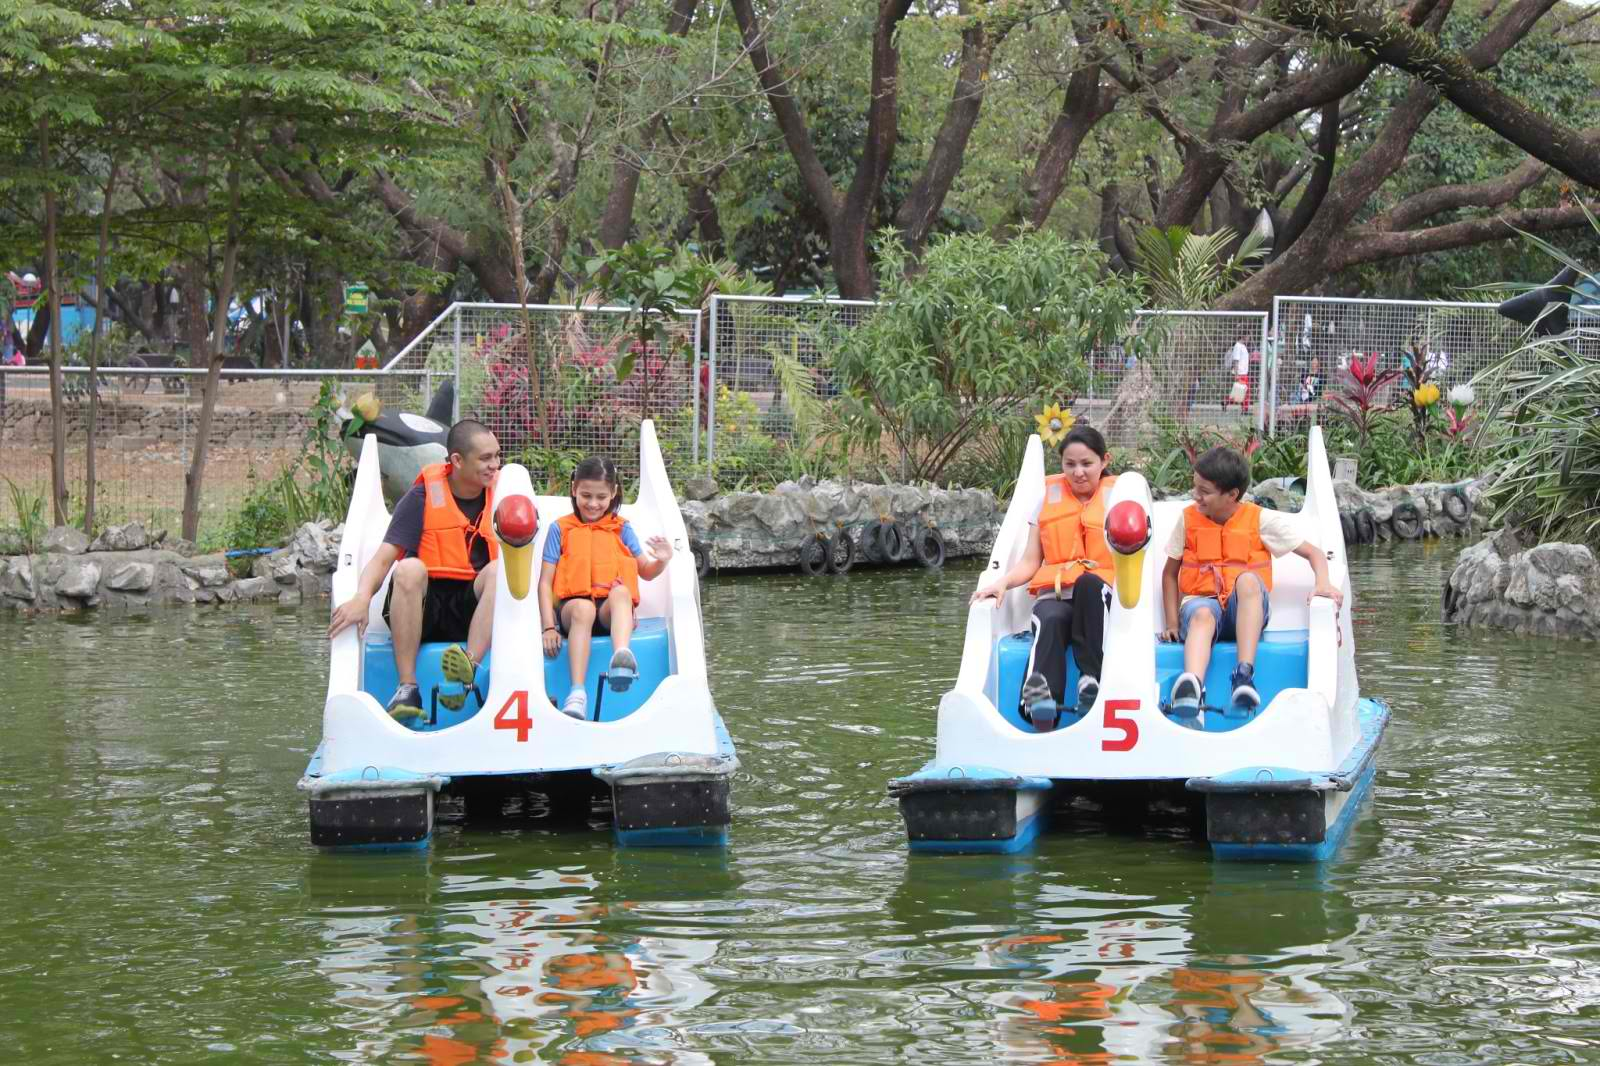 dating activities metro manila We are teambuilding manila we believe that teams that play together are built together we design team events according to your objective, requirement and budget.